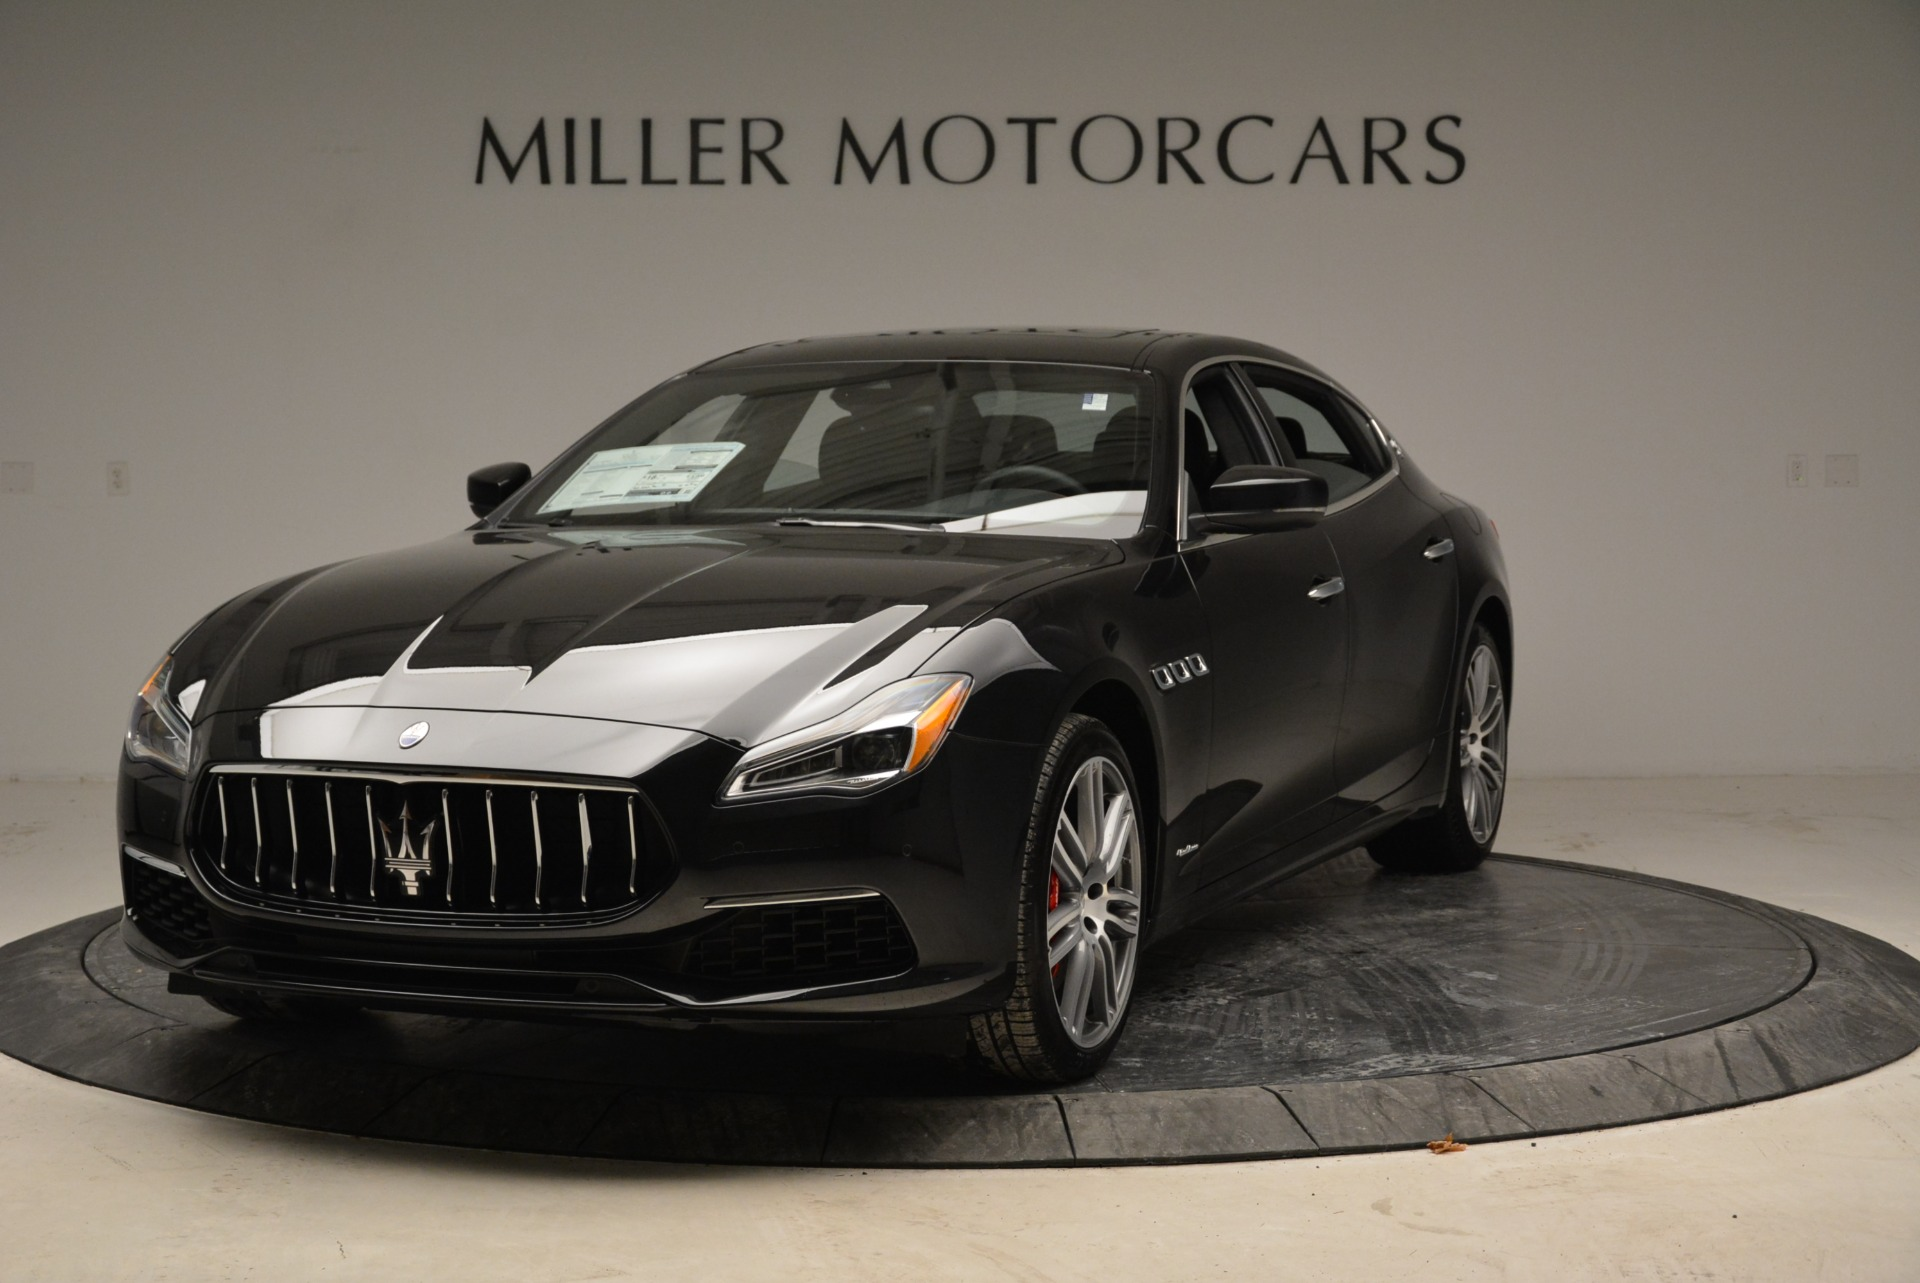 Used 2018 Maserati Quattroporte S Q4 GranLusso for sale Sold at Bentley Greenwich in Greenwich CT 06830 1